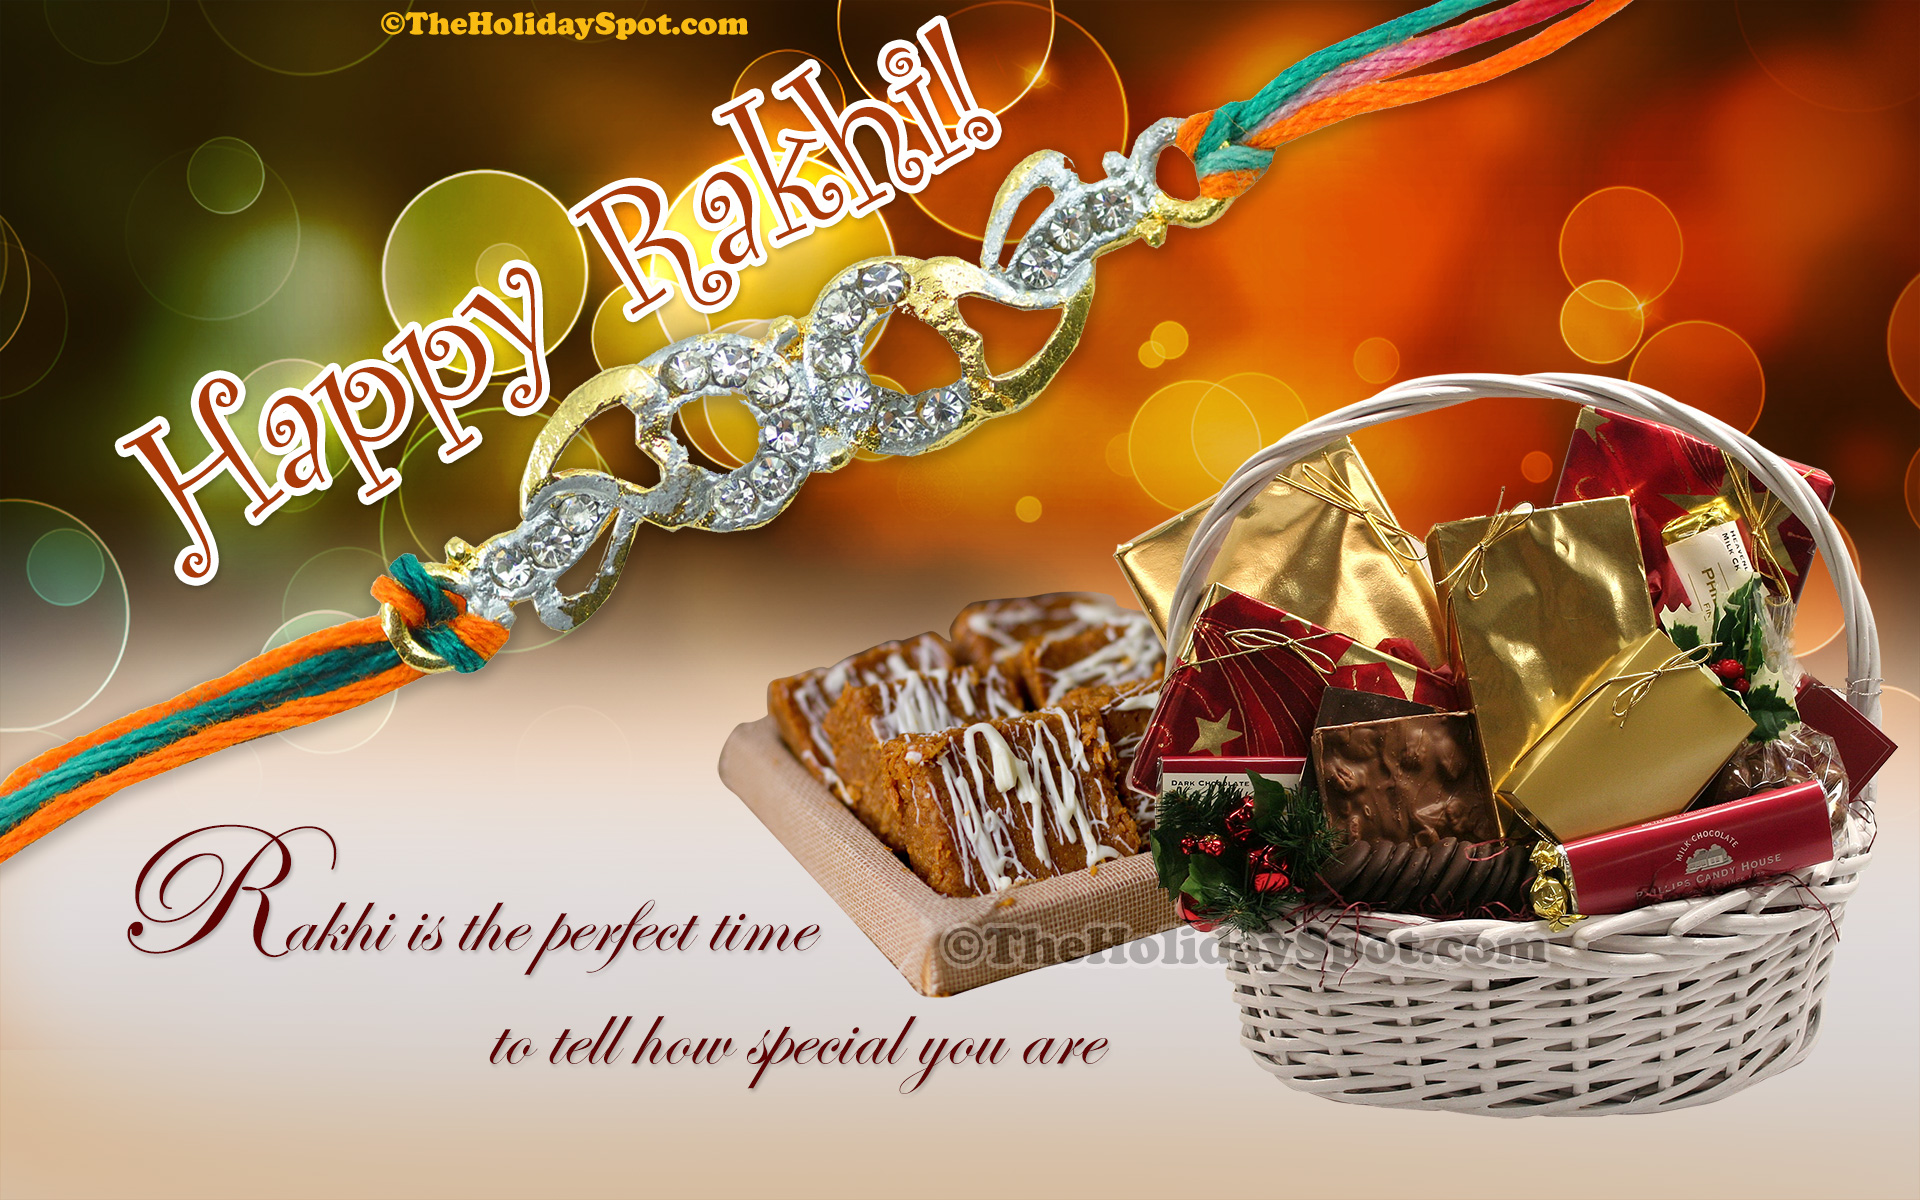 Rakhi wallpapers hd rakhi wallpaper featuring gifts and sweets for the occasion kristyandbryce Image collections